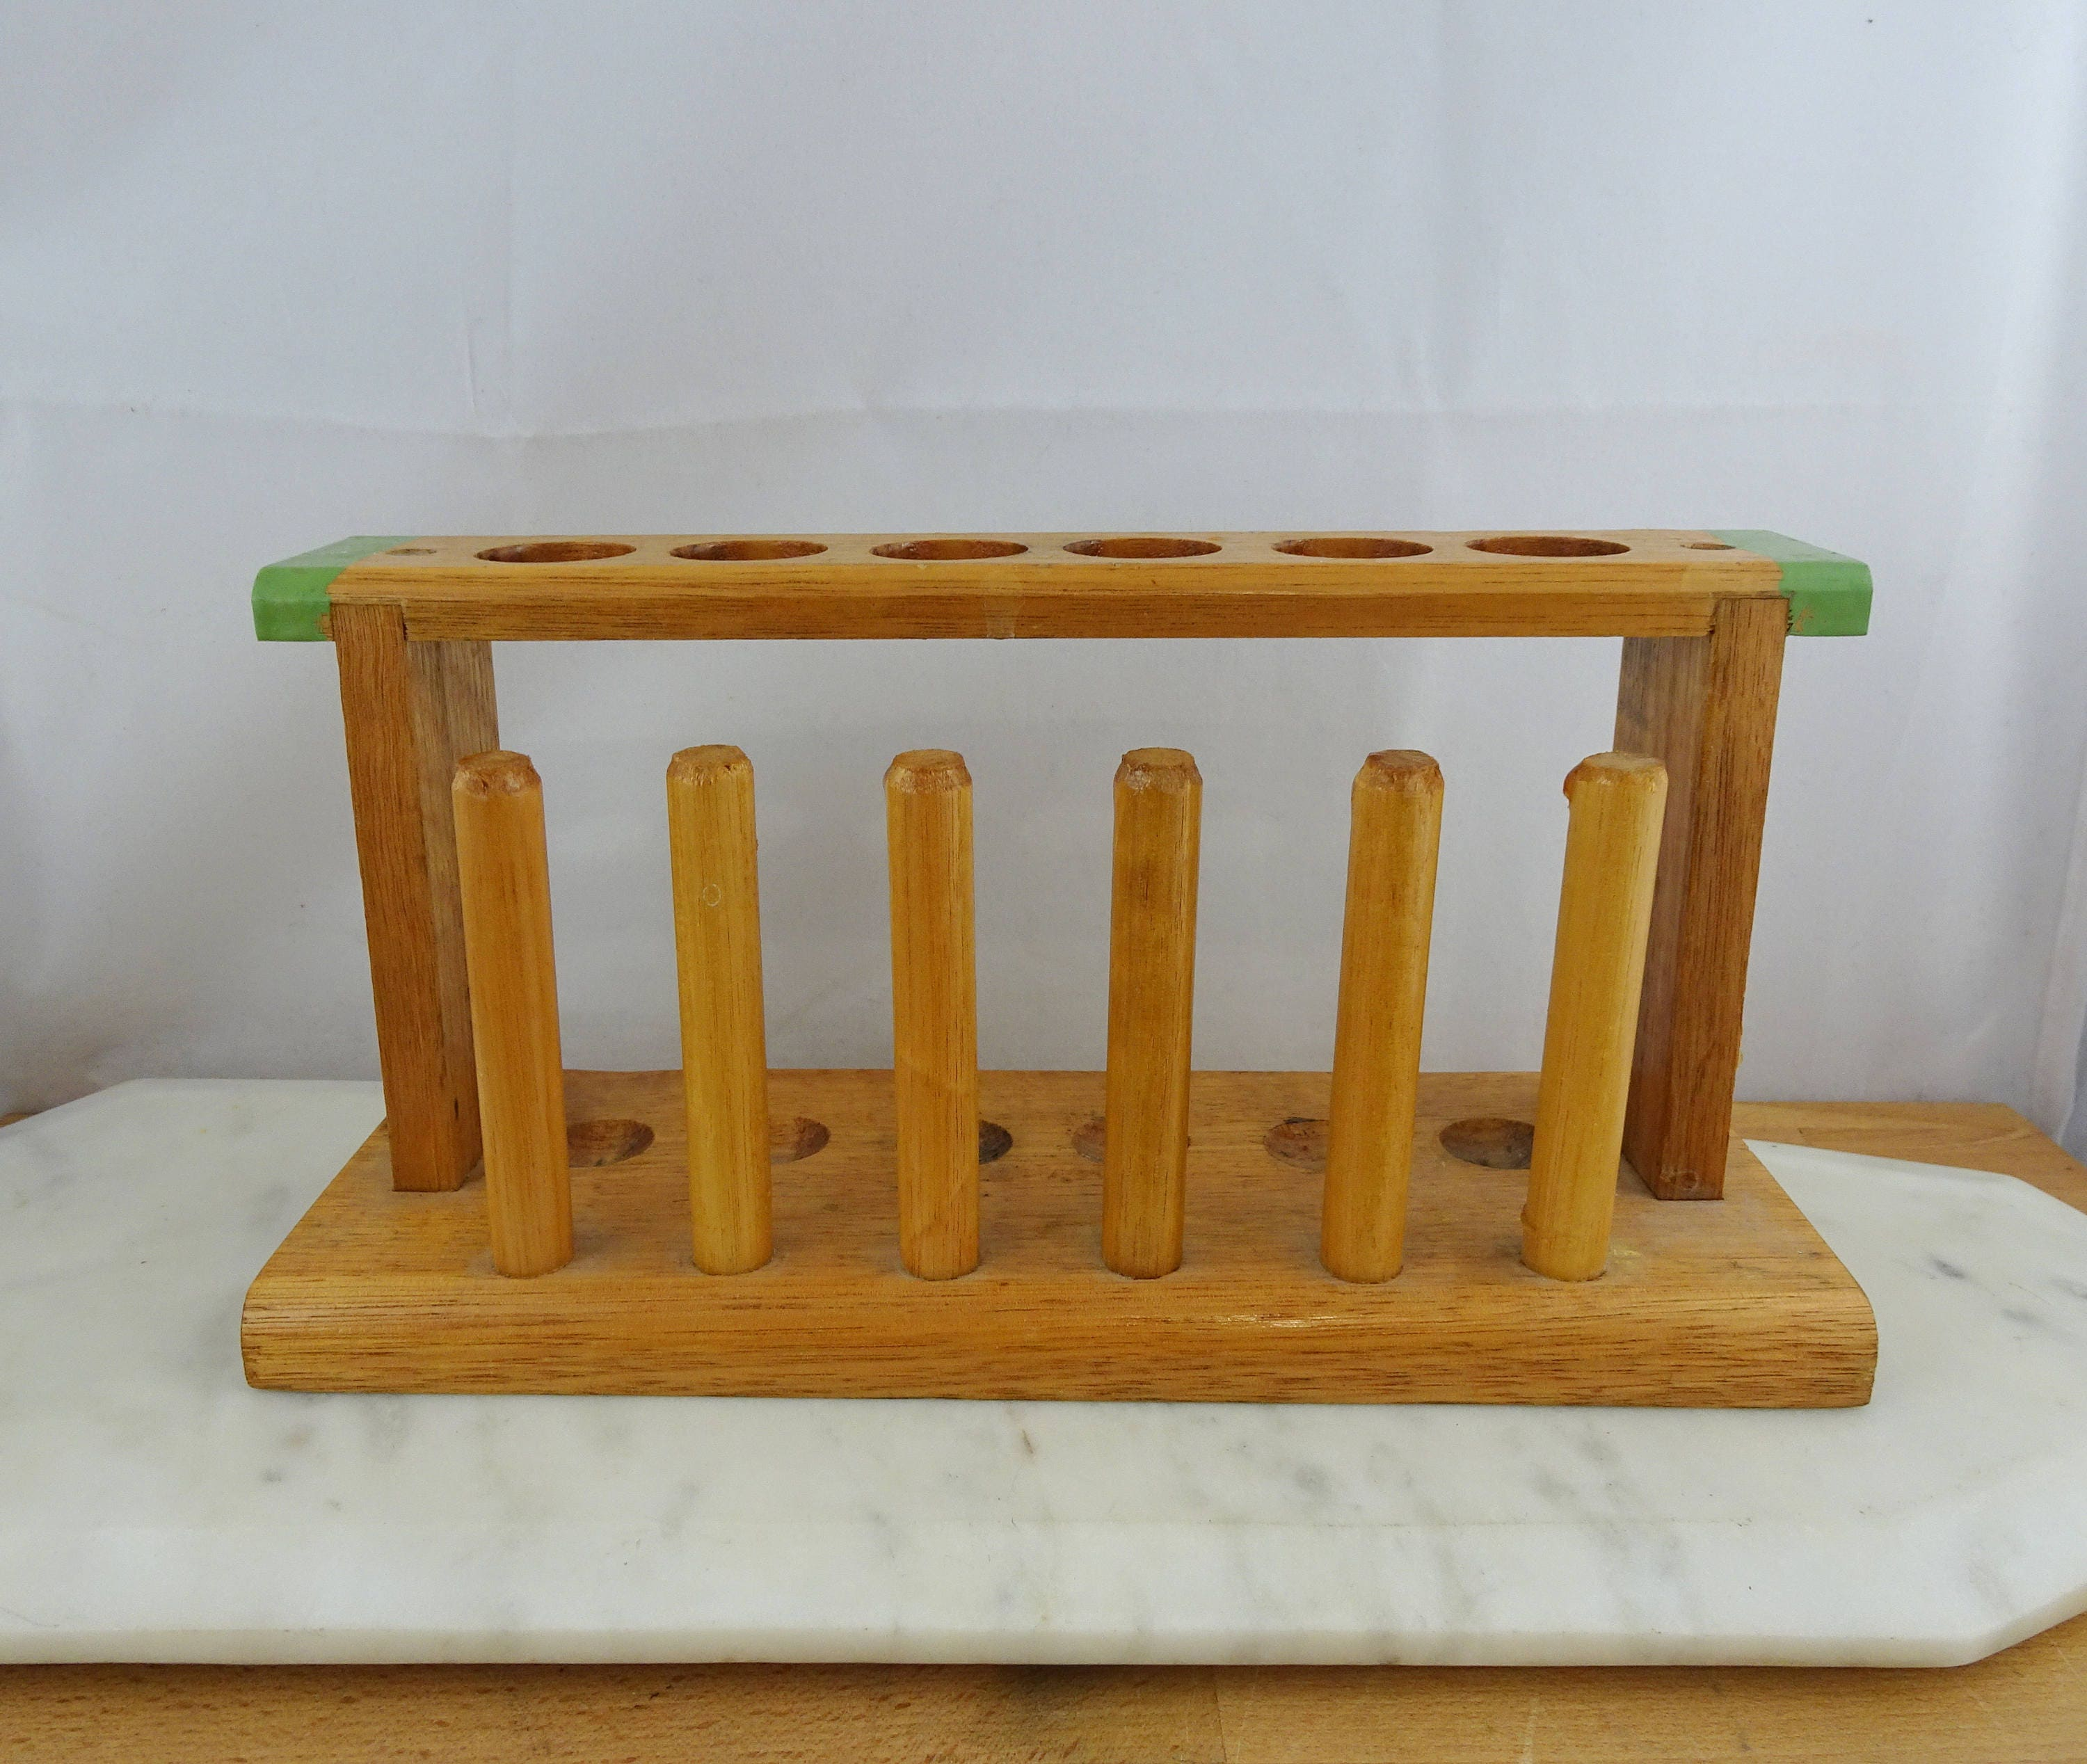 Vintage wooden music stand book stand by vintagearcheology on etsy - Details Vintage Wooden